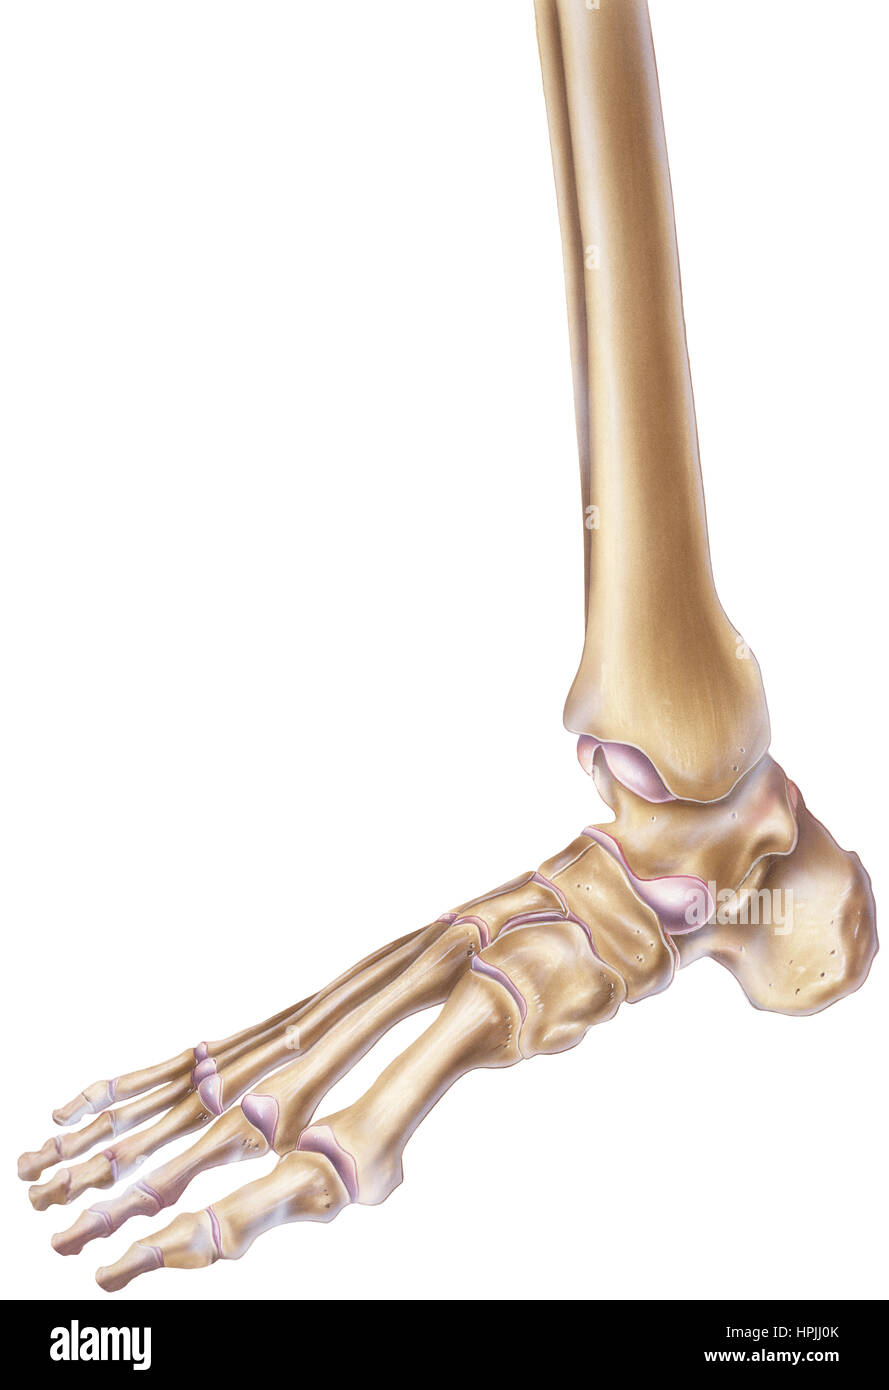 A normal human foot and ankle showing the bones and joints Stock ...